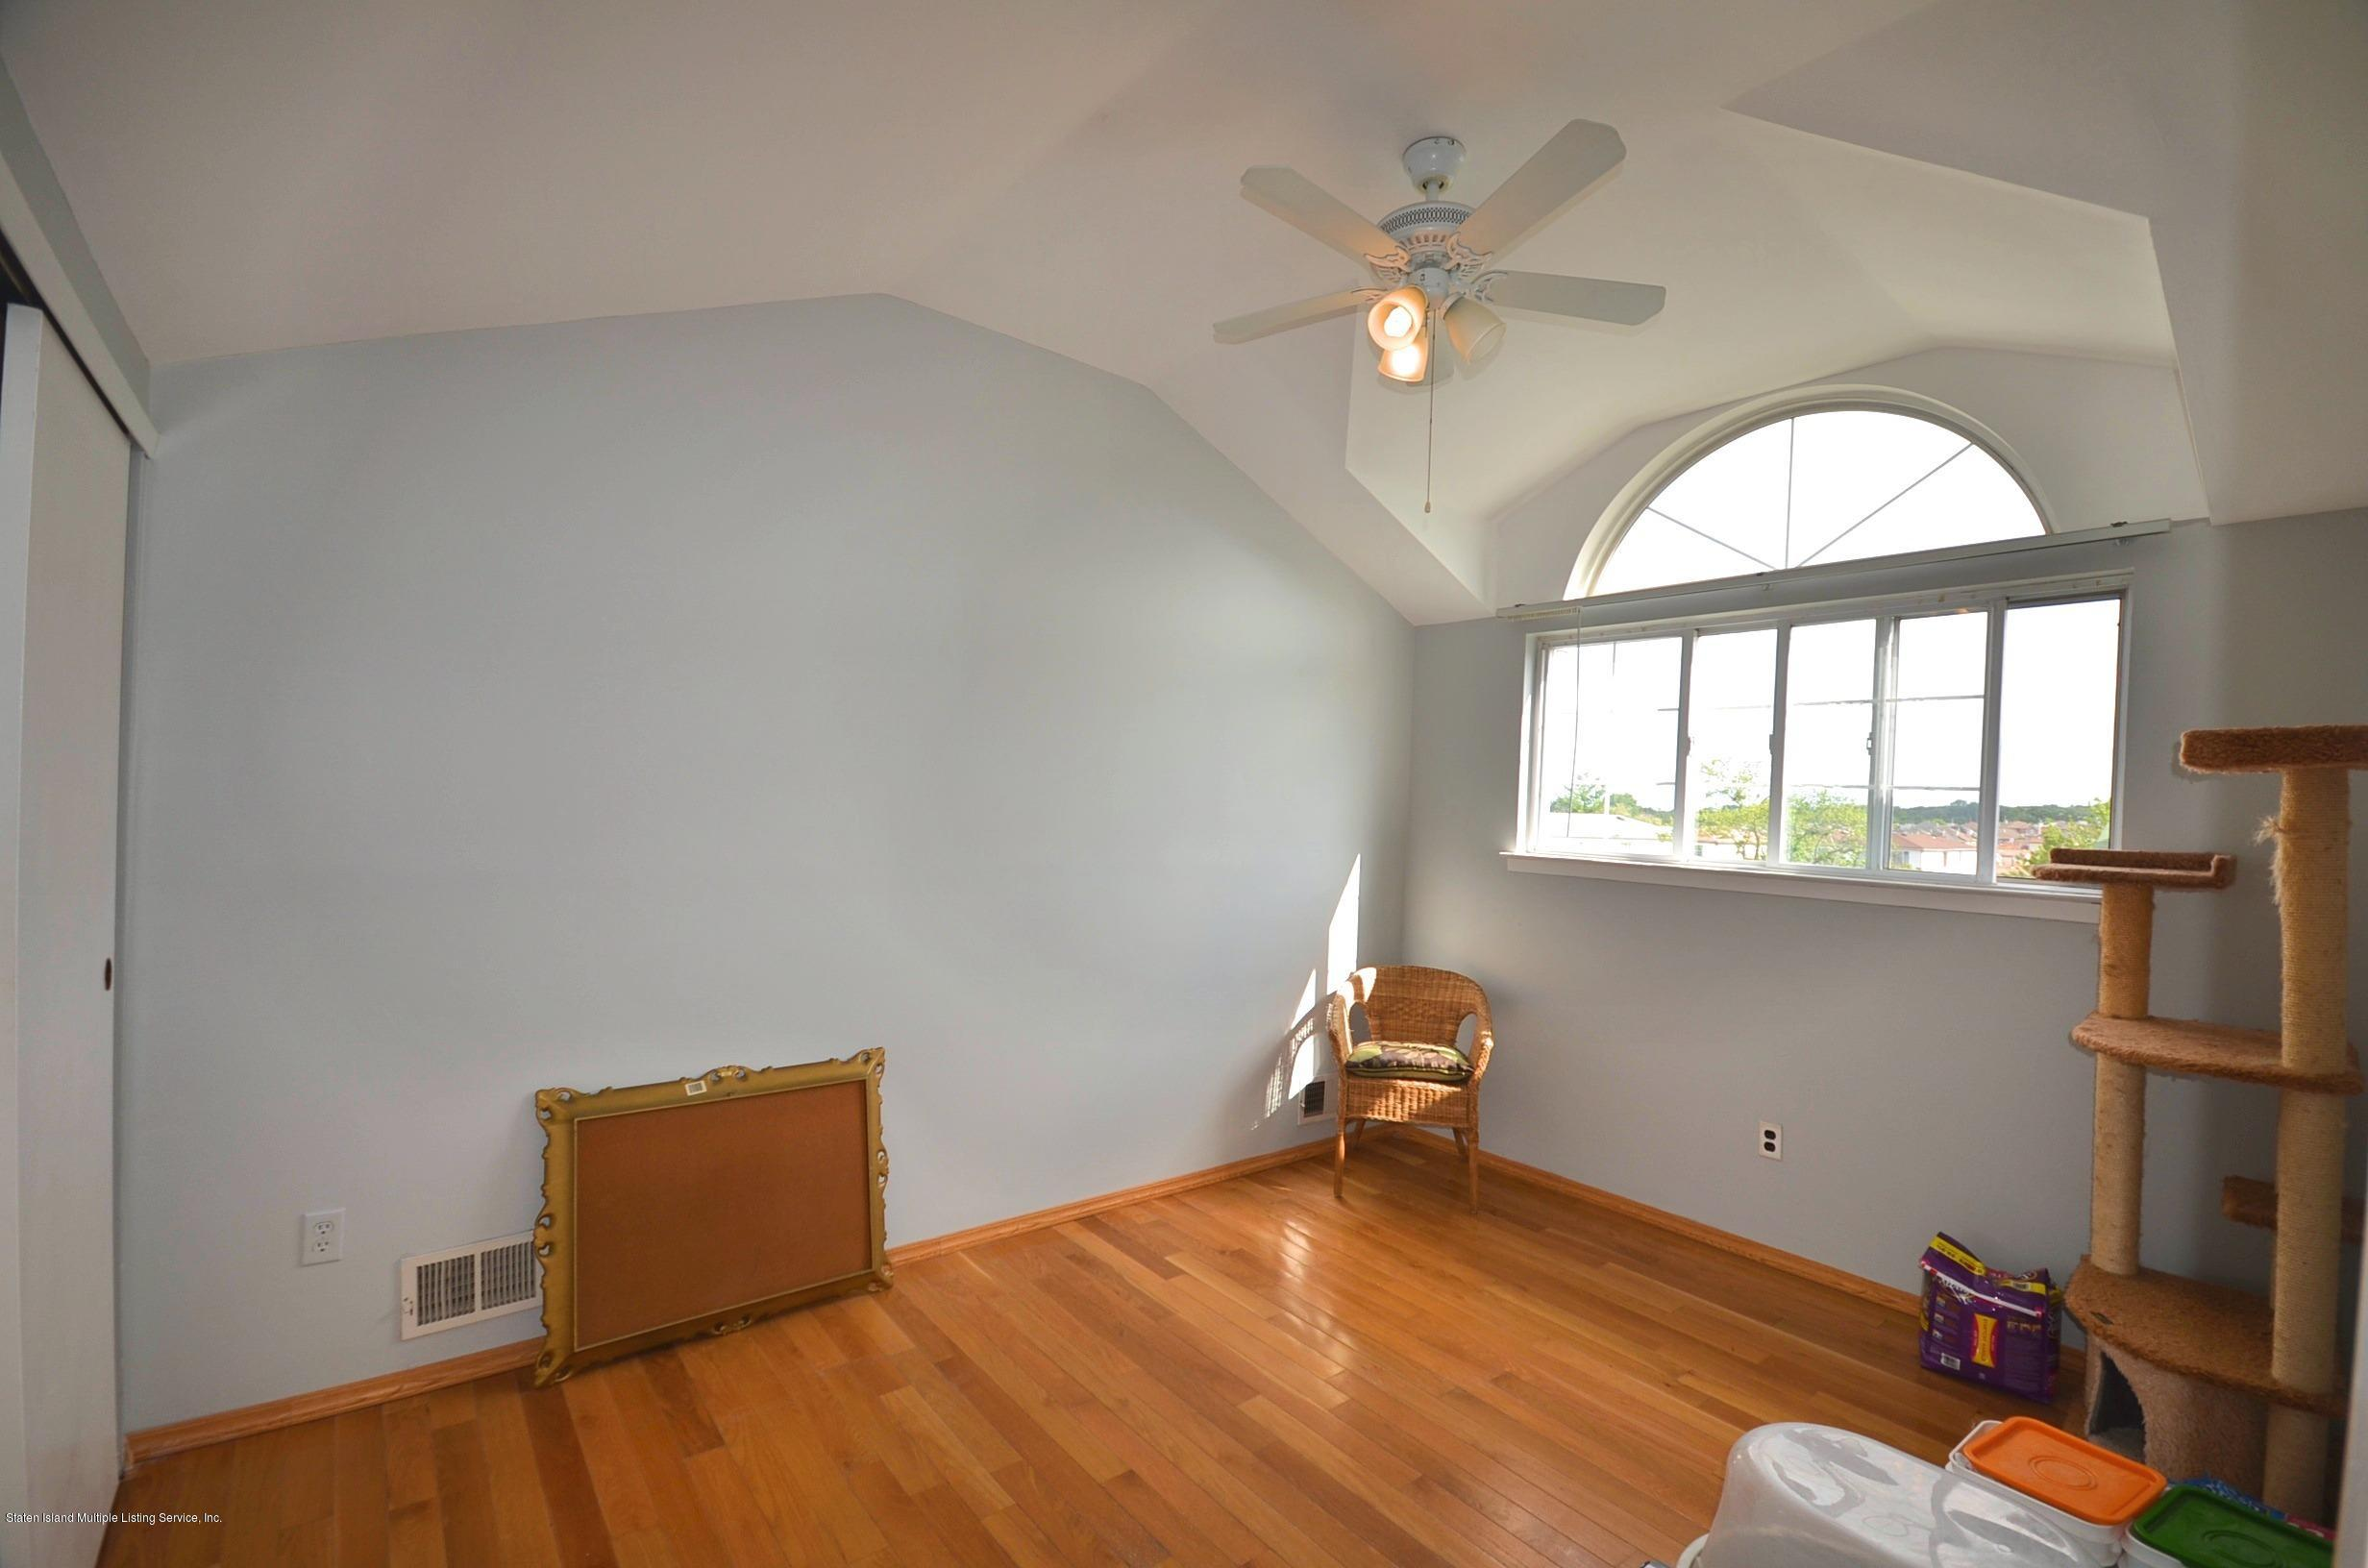 Single Family - Attached 16 Lillie Lane  Staten Island, NY 10314, MLS-1138605-18